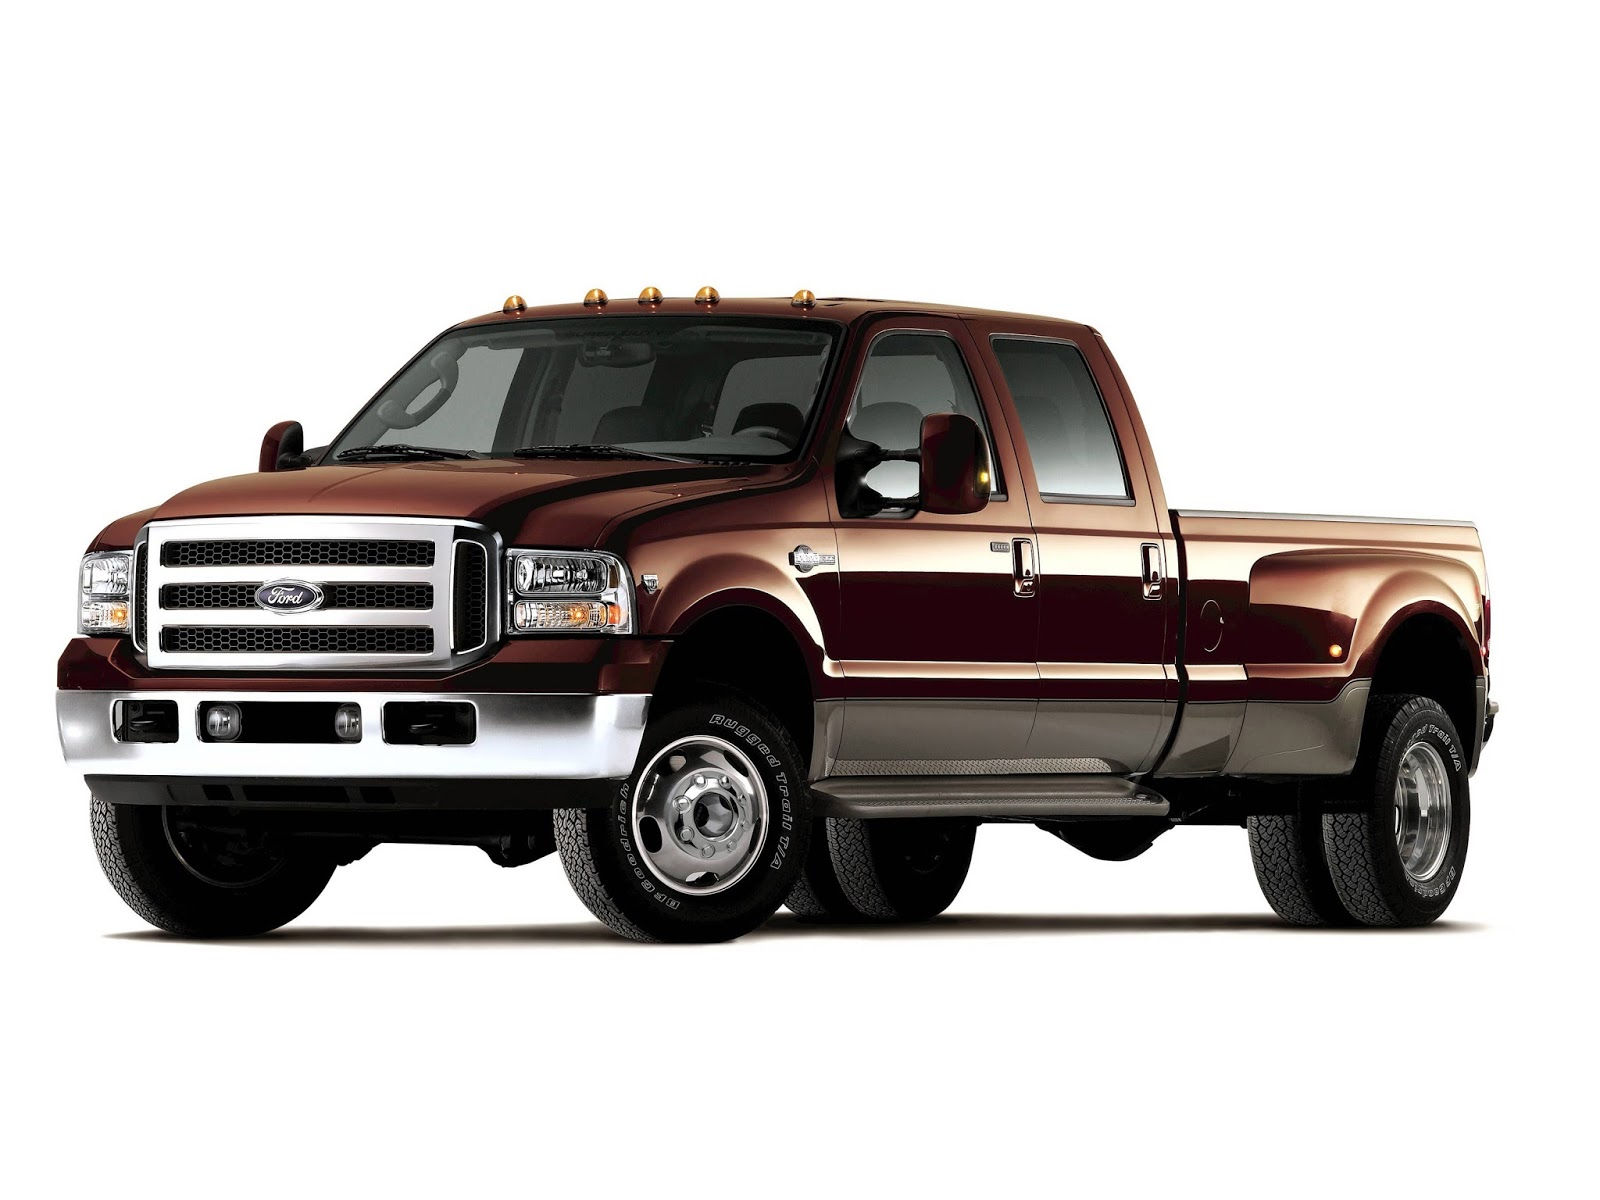 ford f 350 super duty images car hd wallpapers prices review. Black Bedroom Furniture Sets. Home Design Ideas